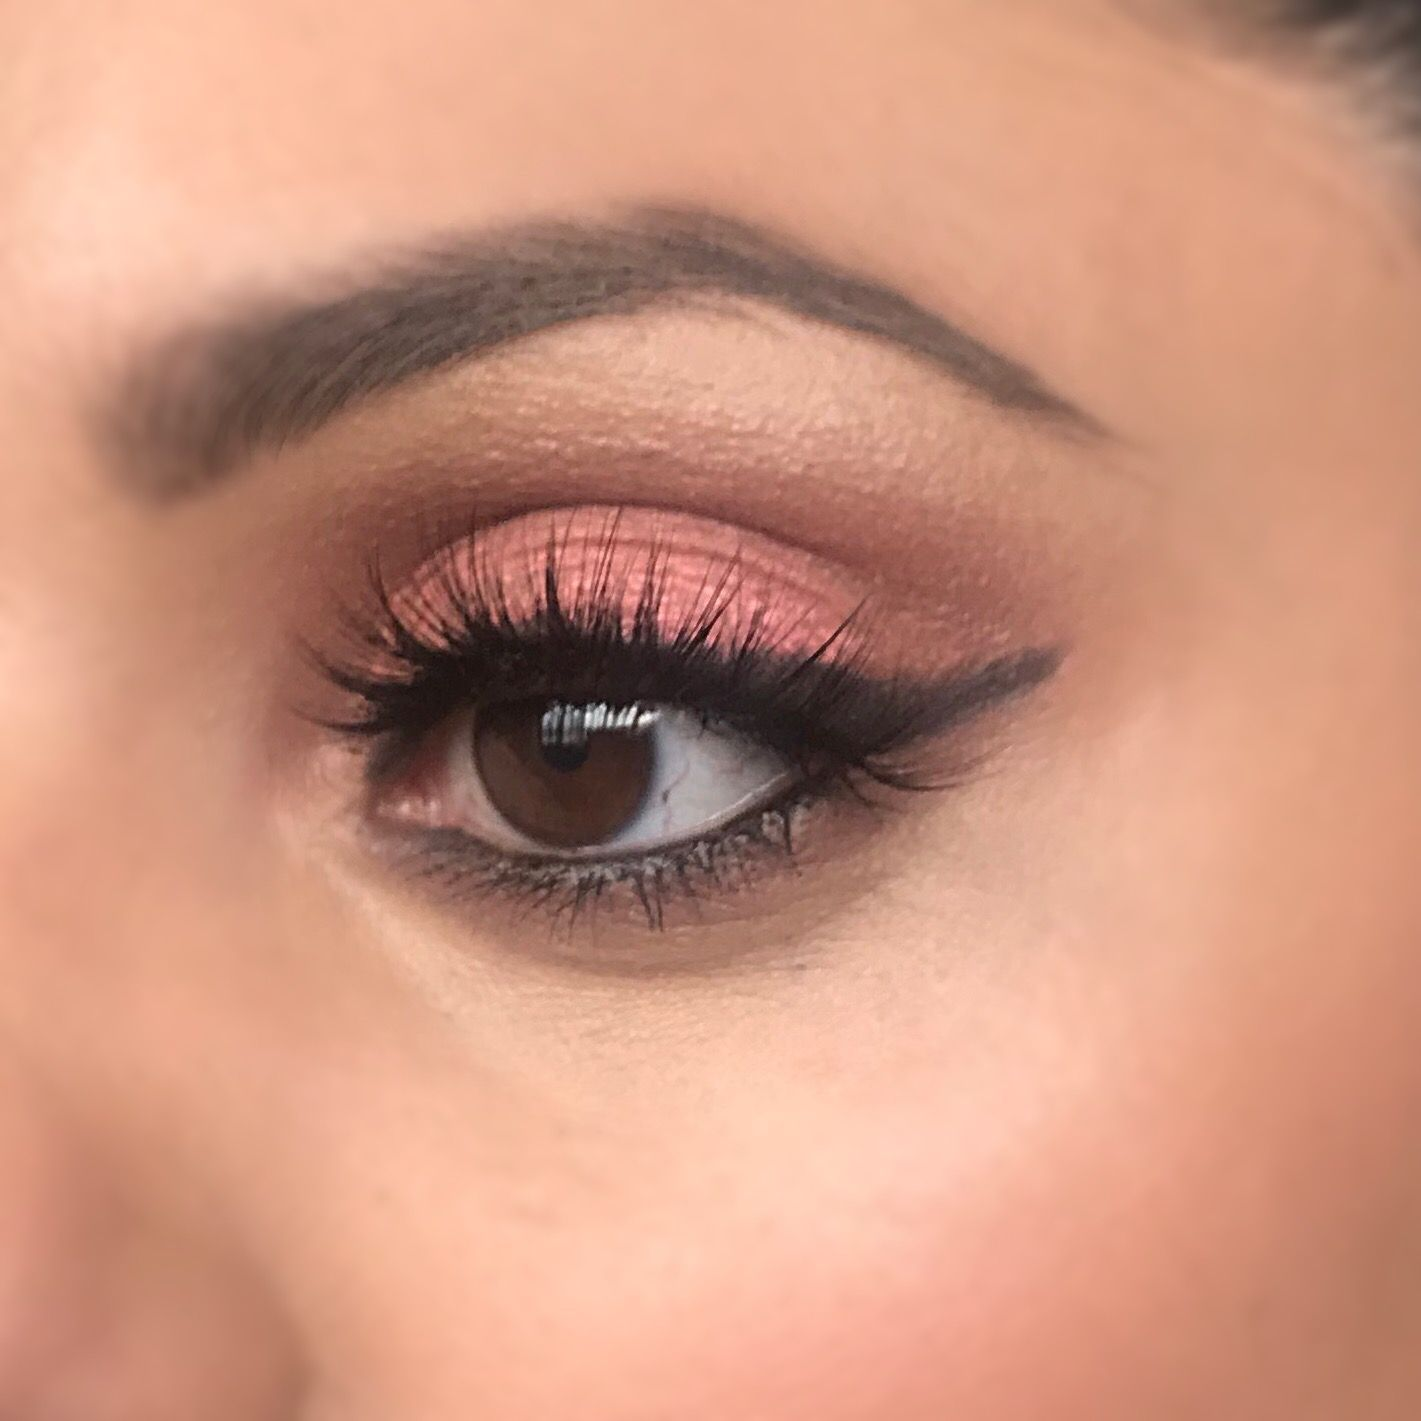 Soft Pink Eyeshadow Look wearing Doll Beauty Lashes